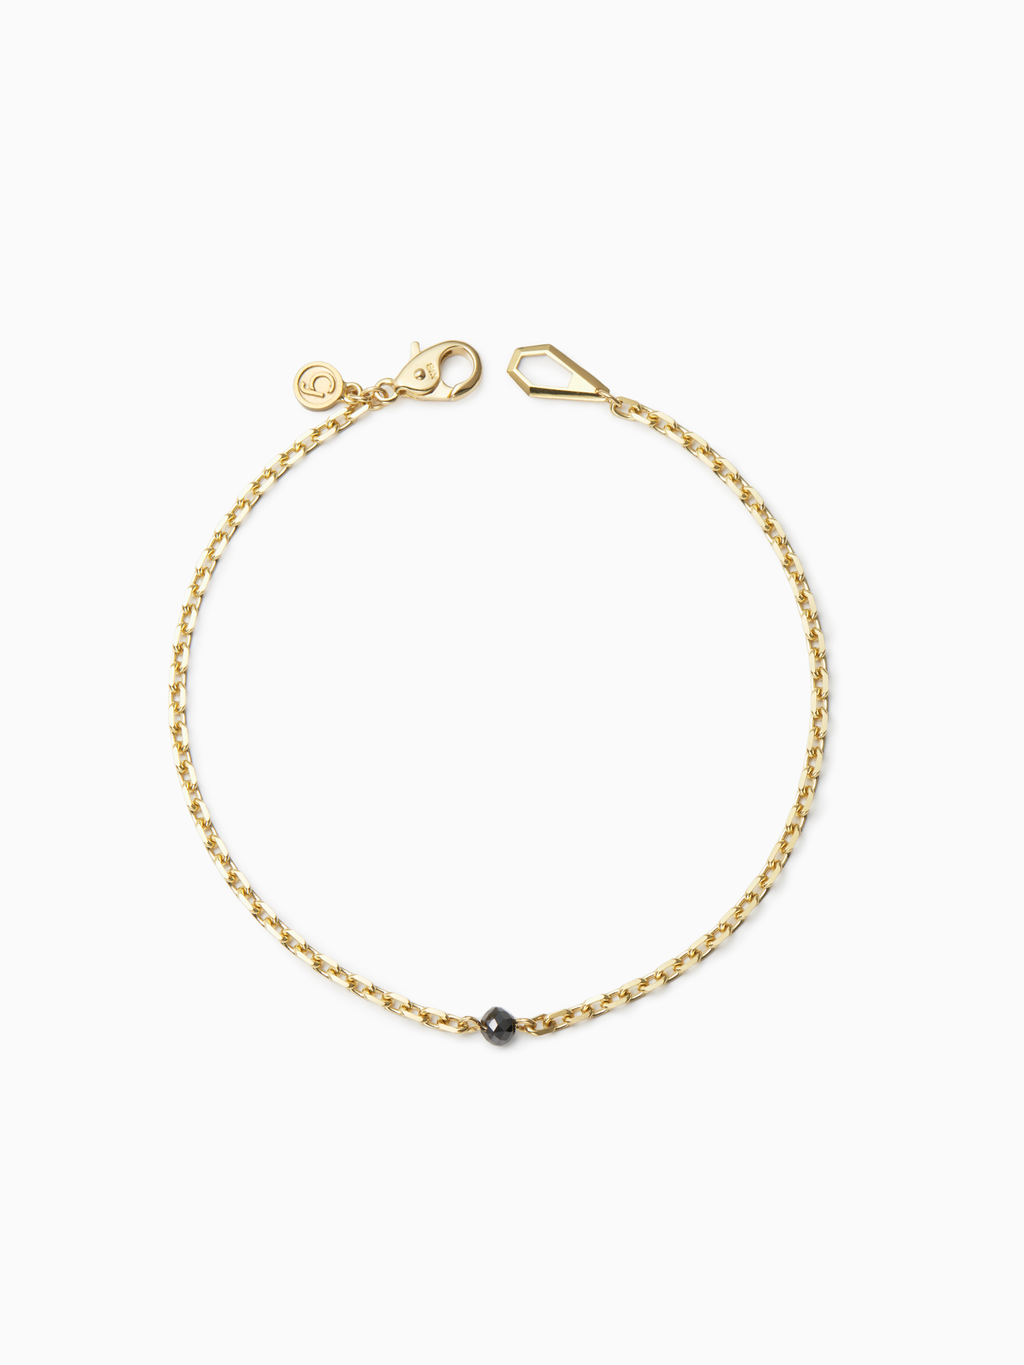 ALECT | BRACELET | DIAMOND | GOLD